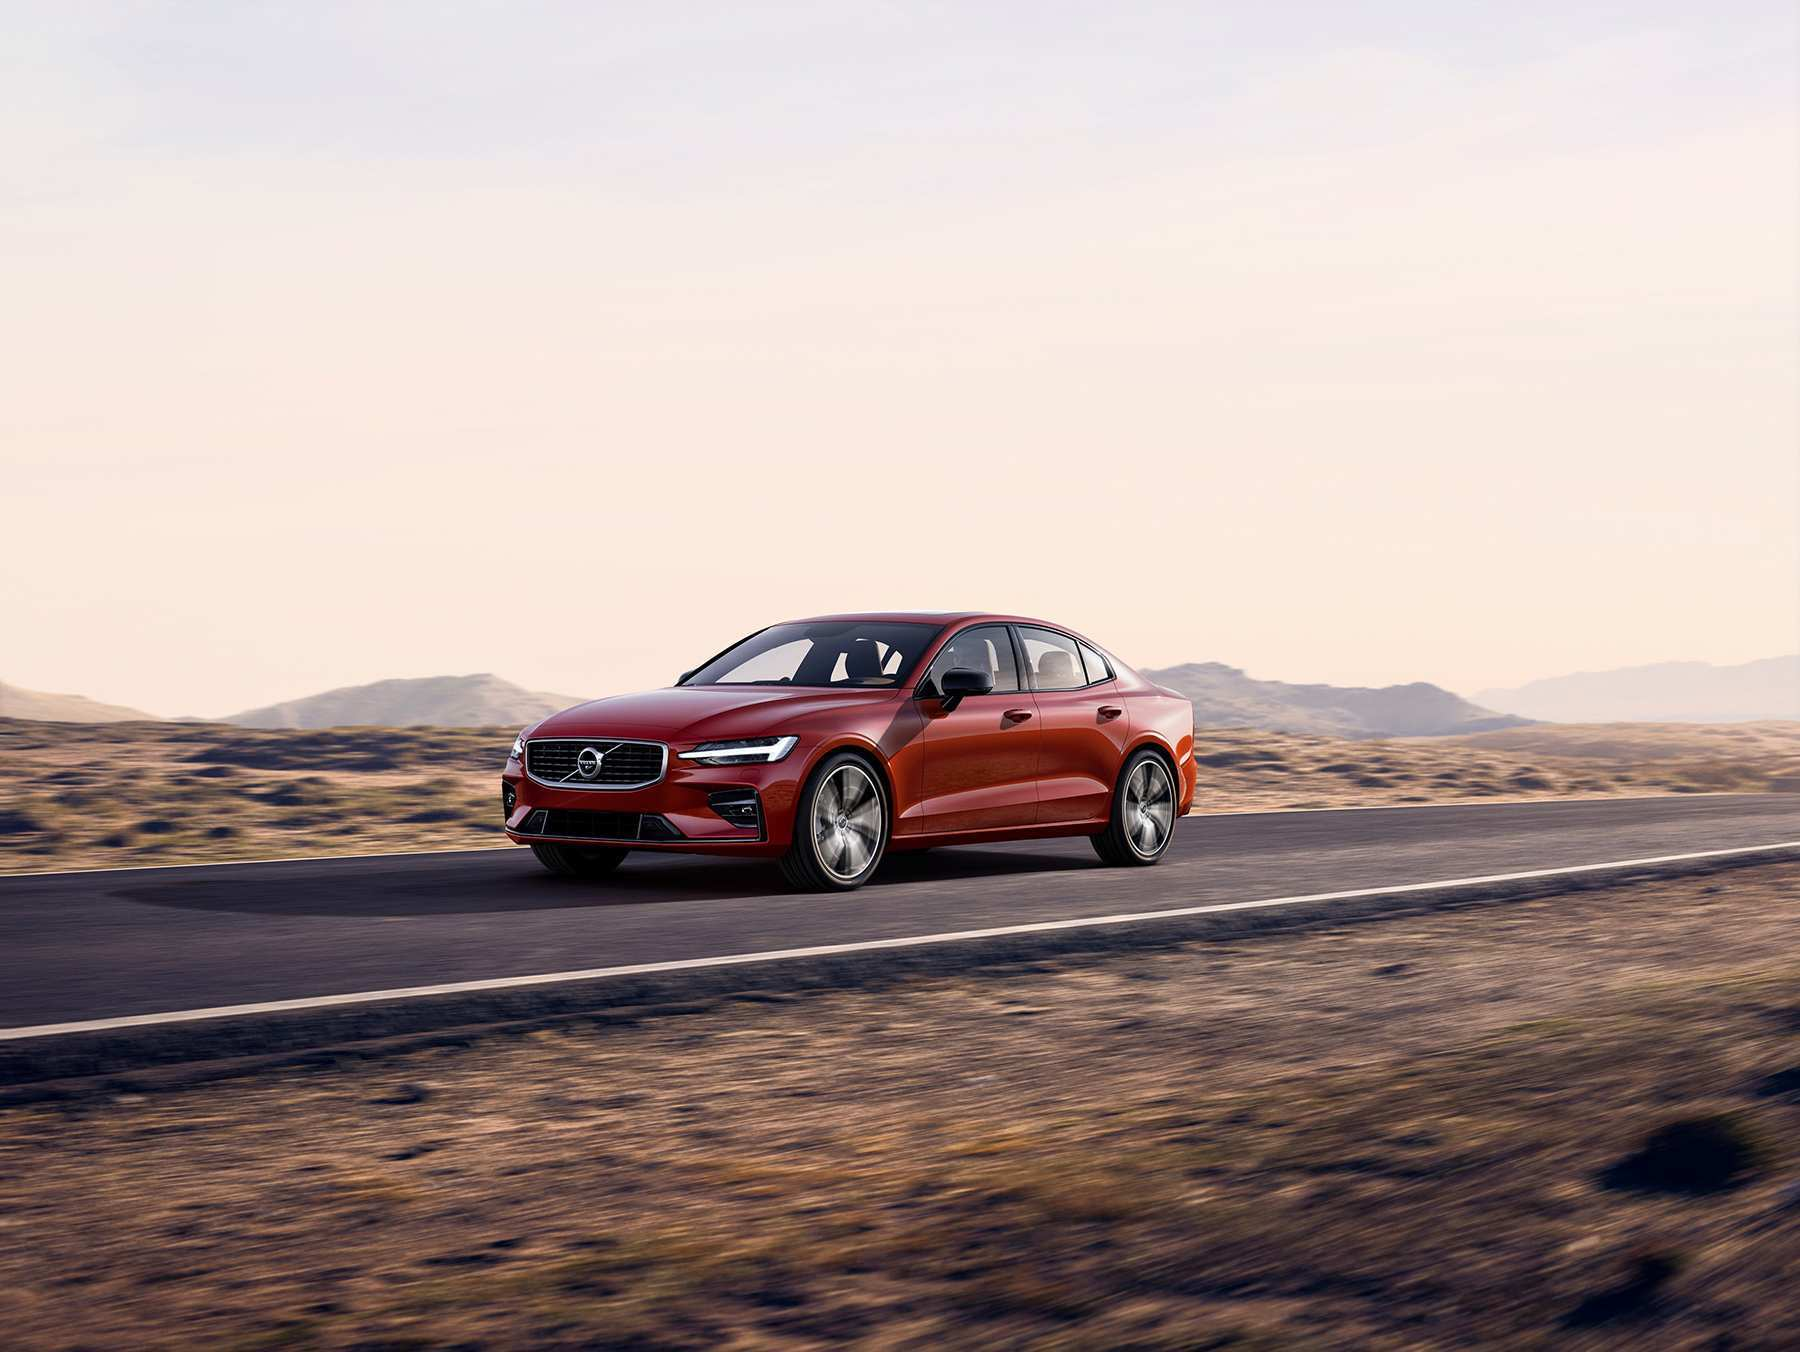 35 Great 2019 Volvo S60 Gas Mileage Spy Shoot Rumors with 2019 Volvo S60 Gas Mileage Spy Shoot